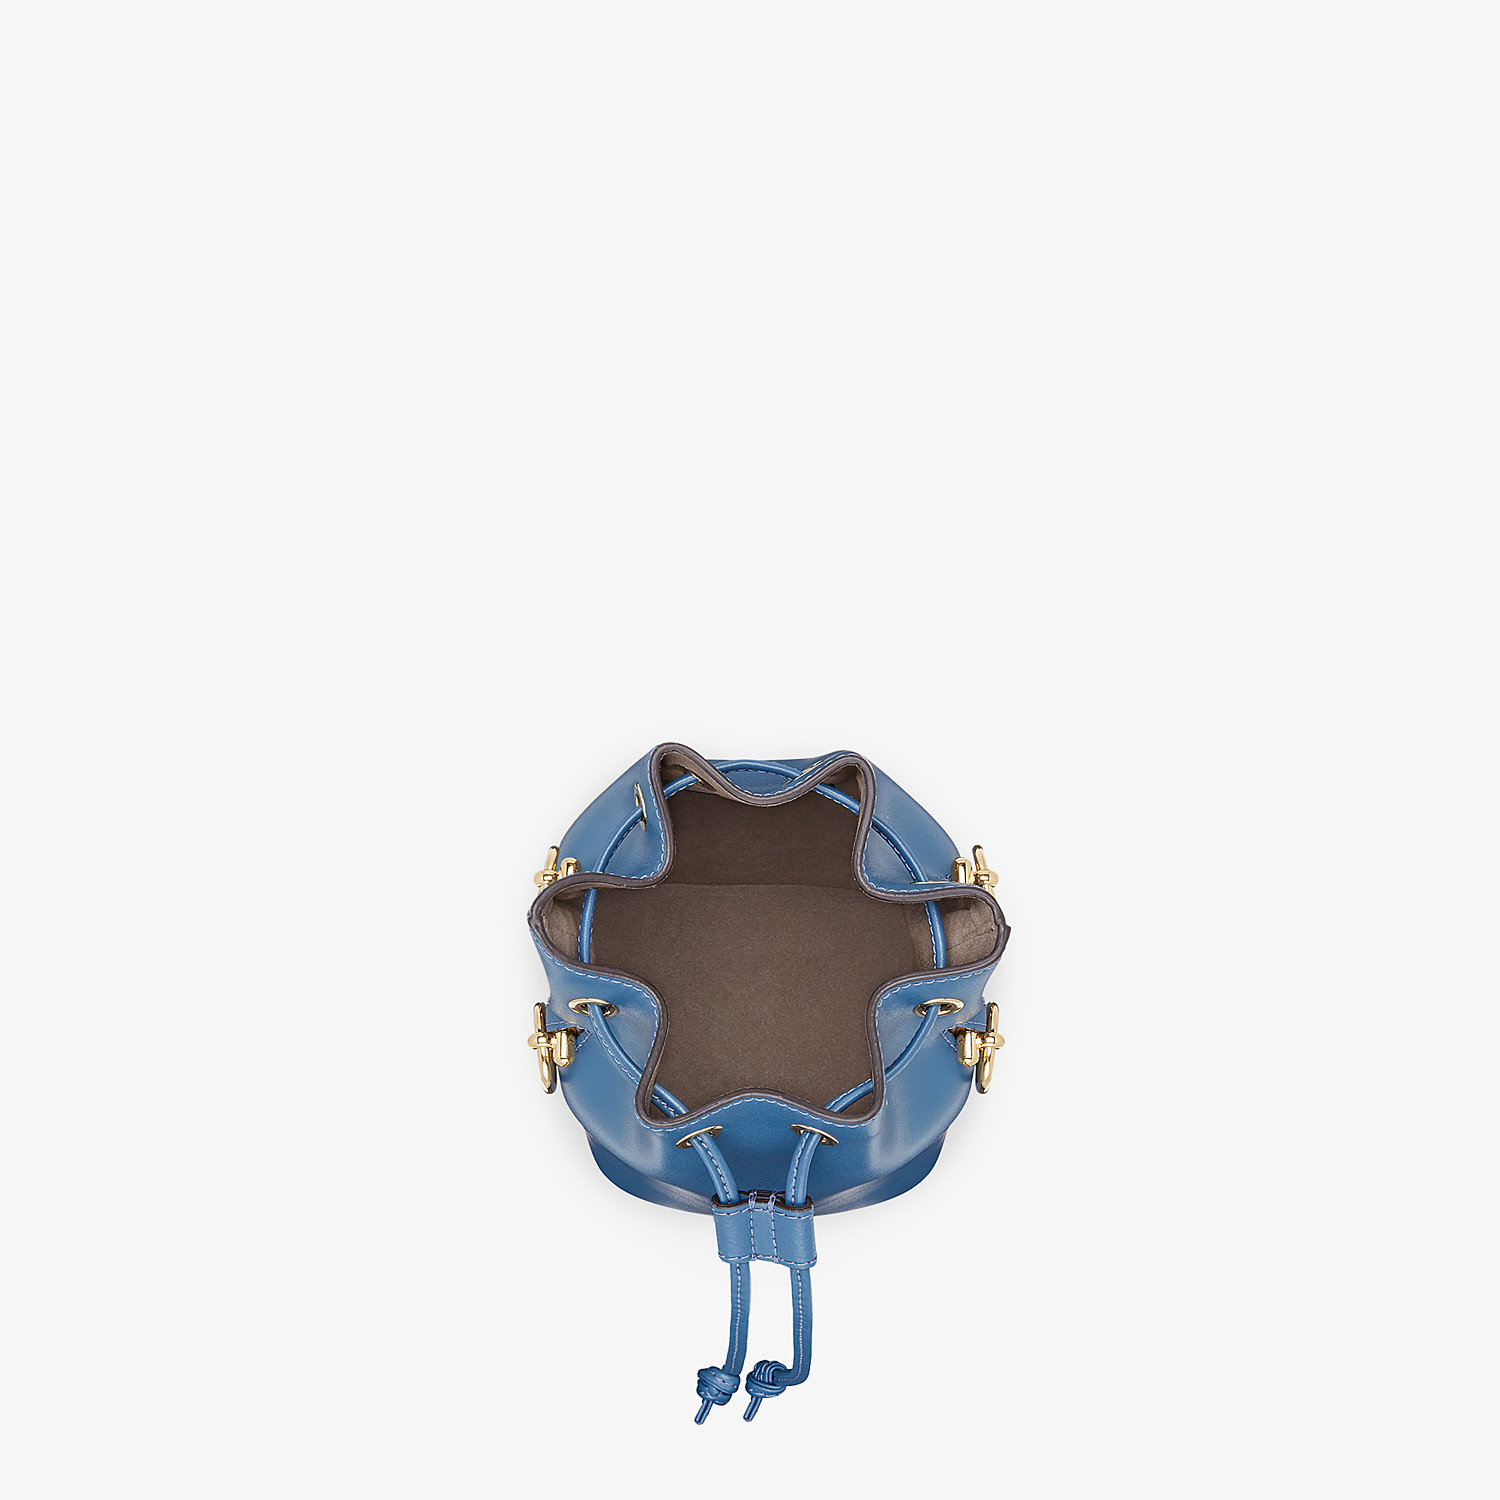 FENDI MON TRESOR - Blue leather mini-bag - view 4 detail